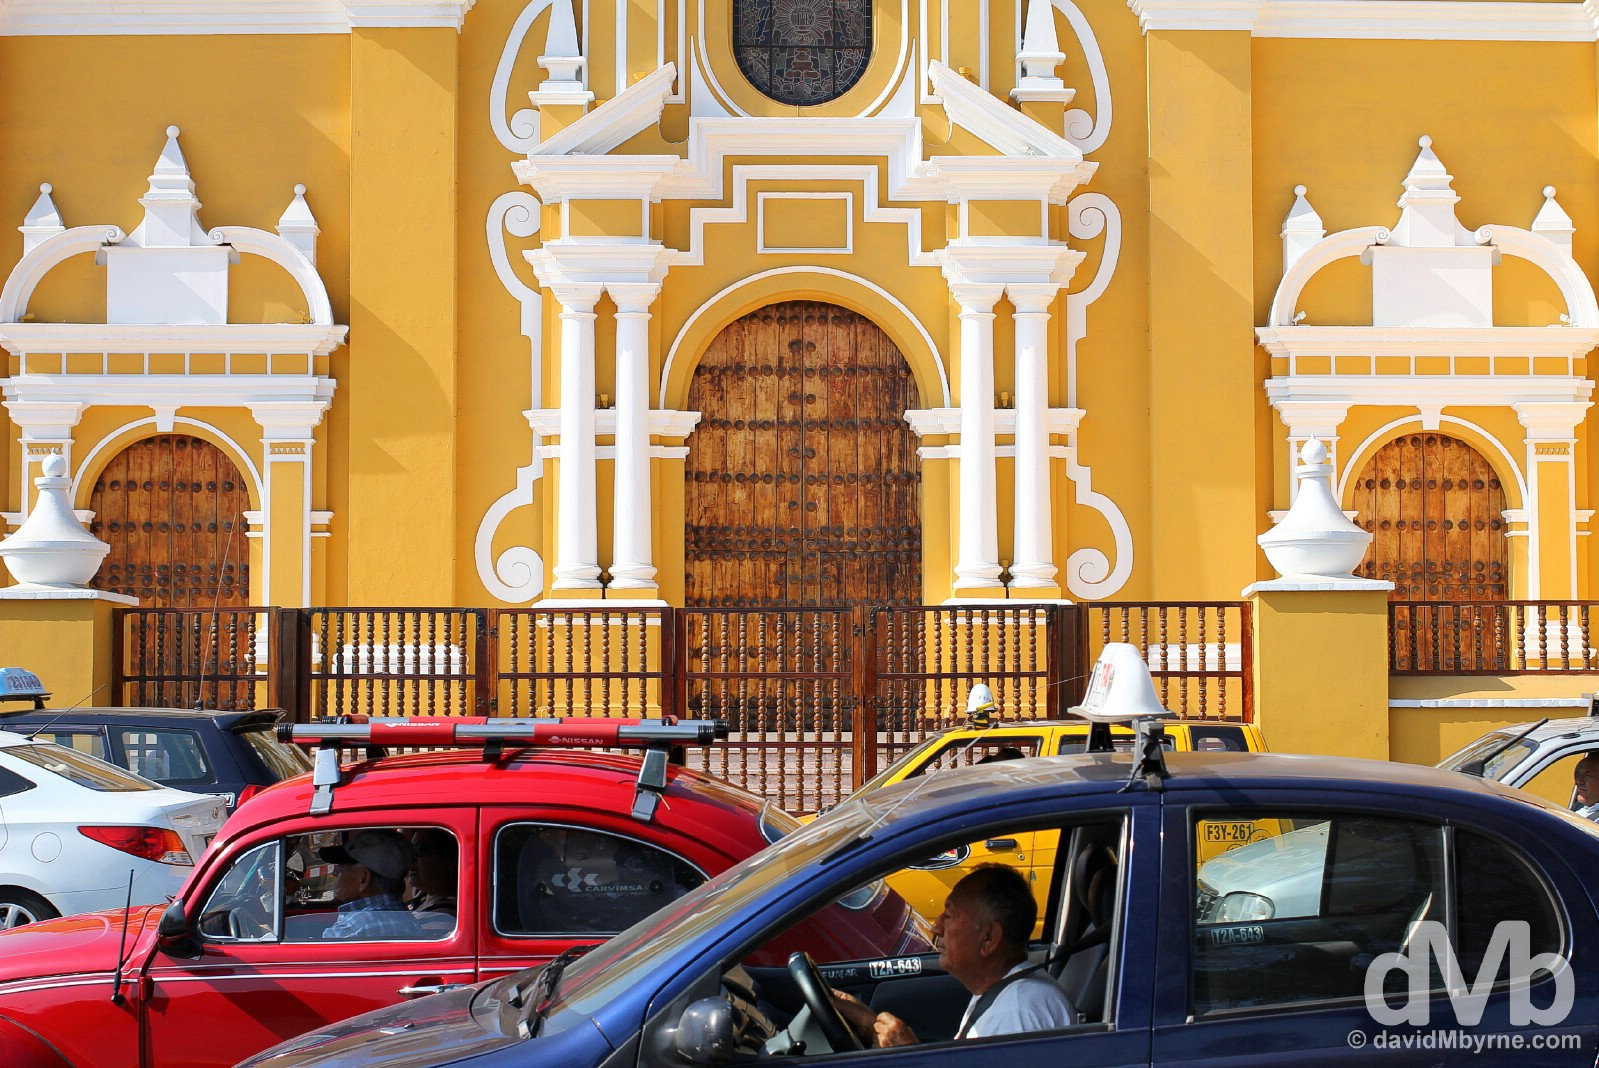 Traffic outside La Catedral on Plaza Mayor, Trujillo, northern Peru. July 31, 2015.